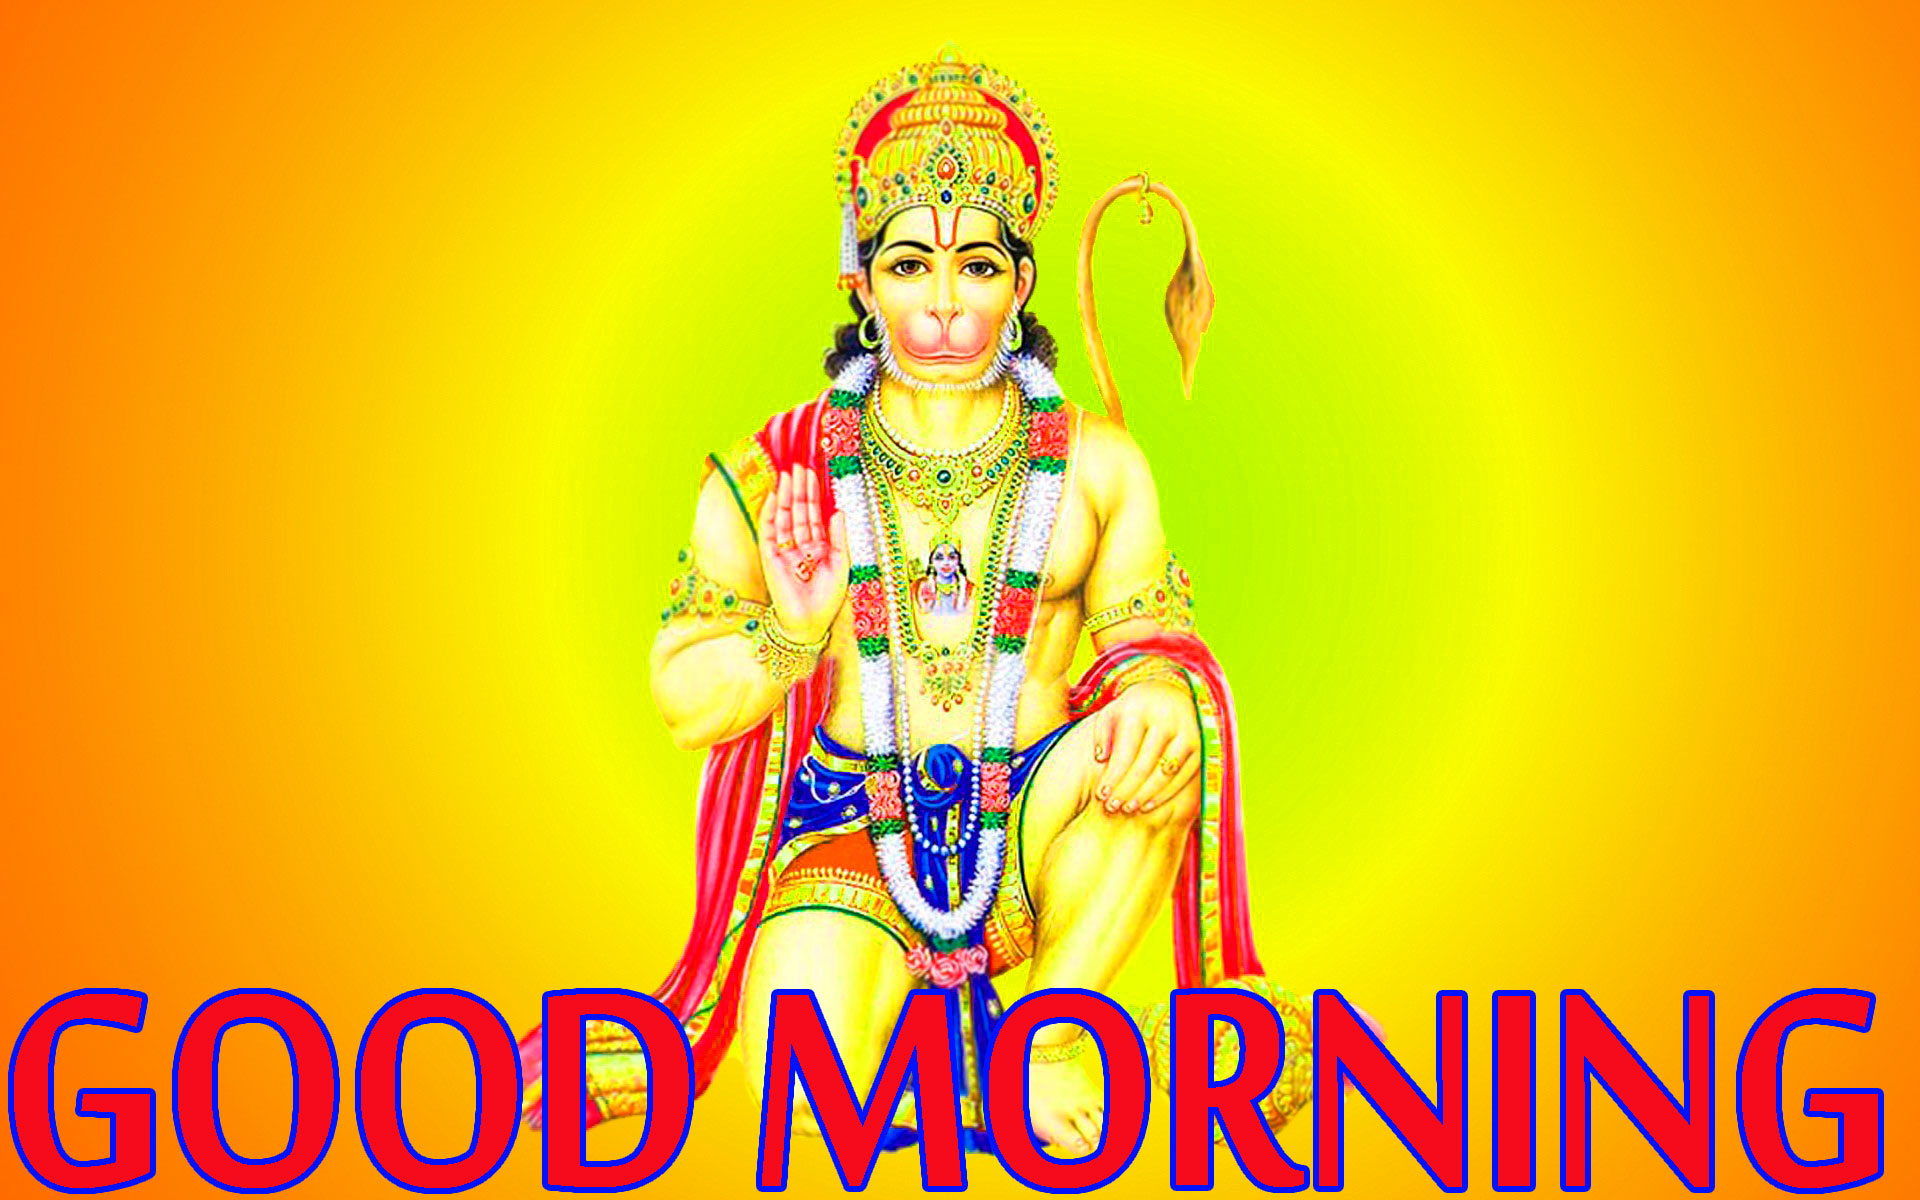 Hindu God Religious Good Morning Images Wallpaper Photo Free HD